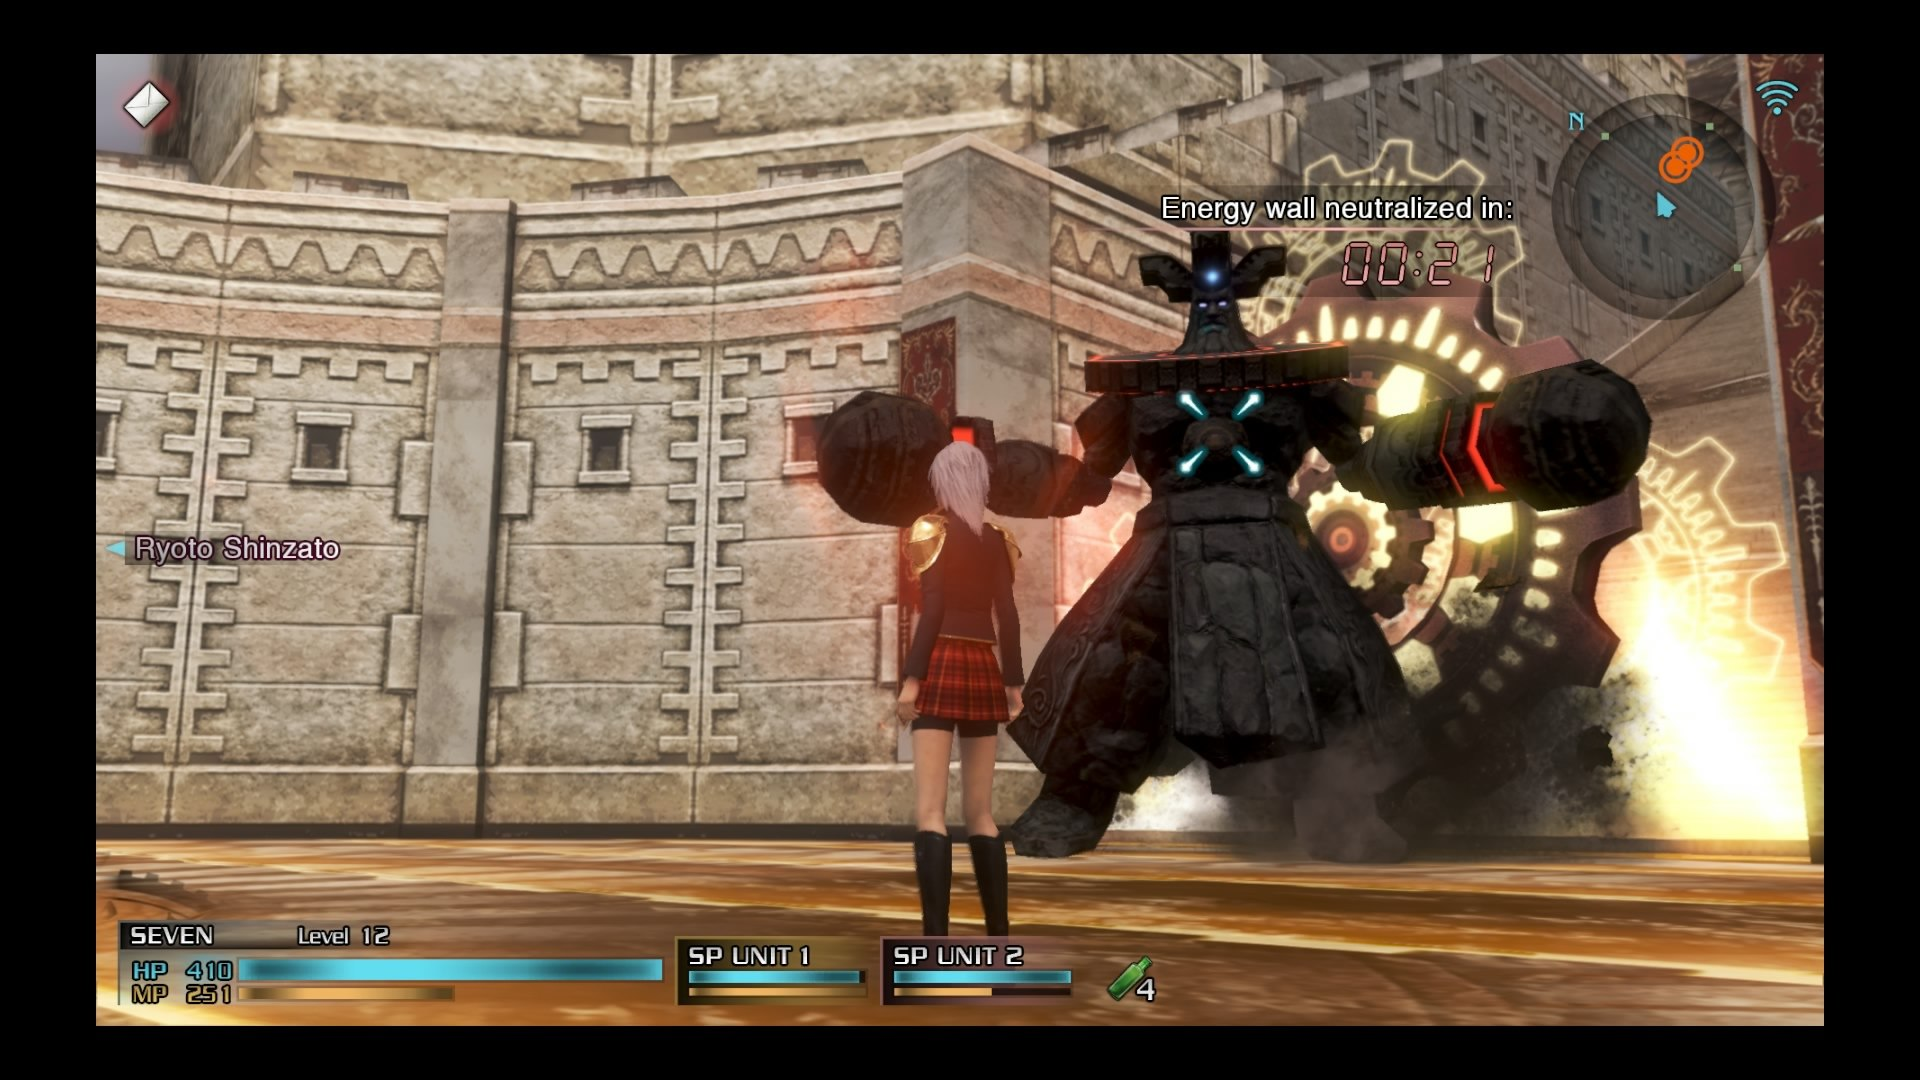 FINAL FANTASY TYPE-0 HD_20150322214824